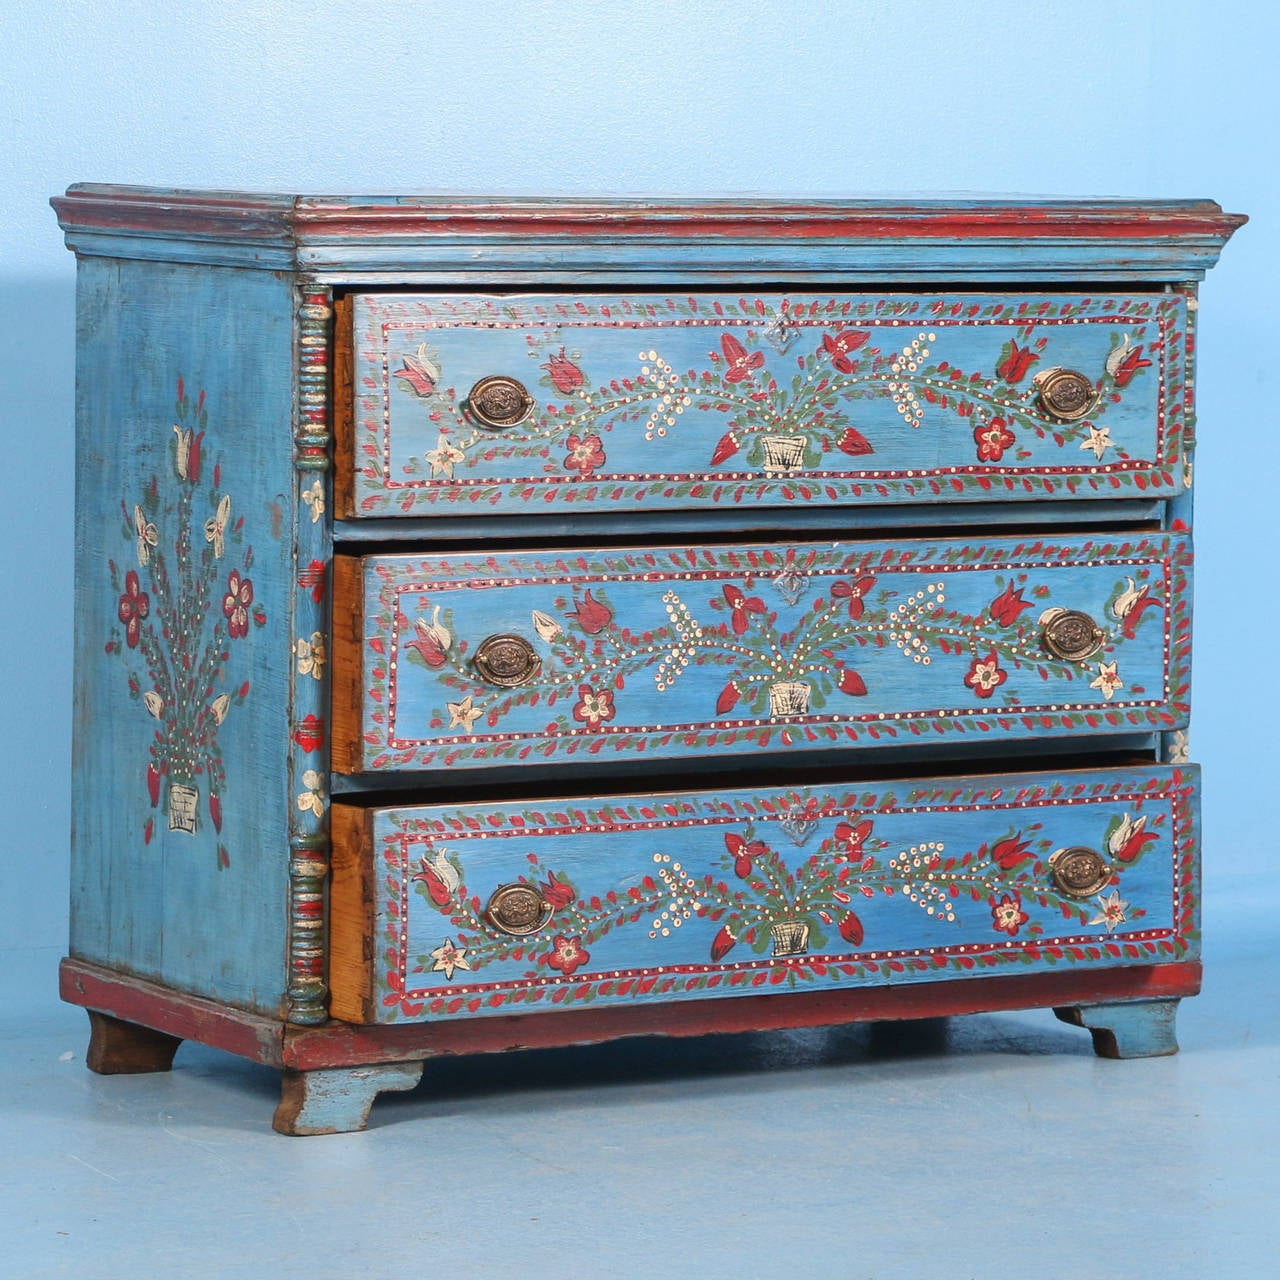 Awesome The Vibrant Colors Are All Original On This Painted Chest Of Drawers. The  Blue With